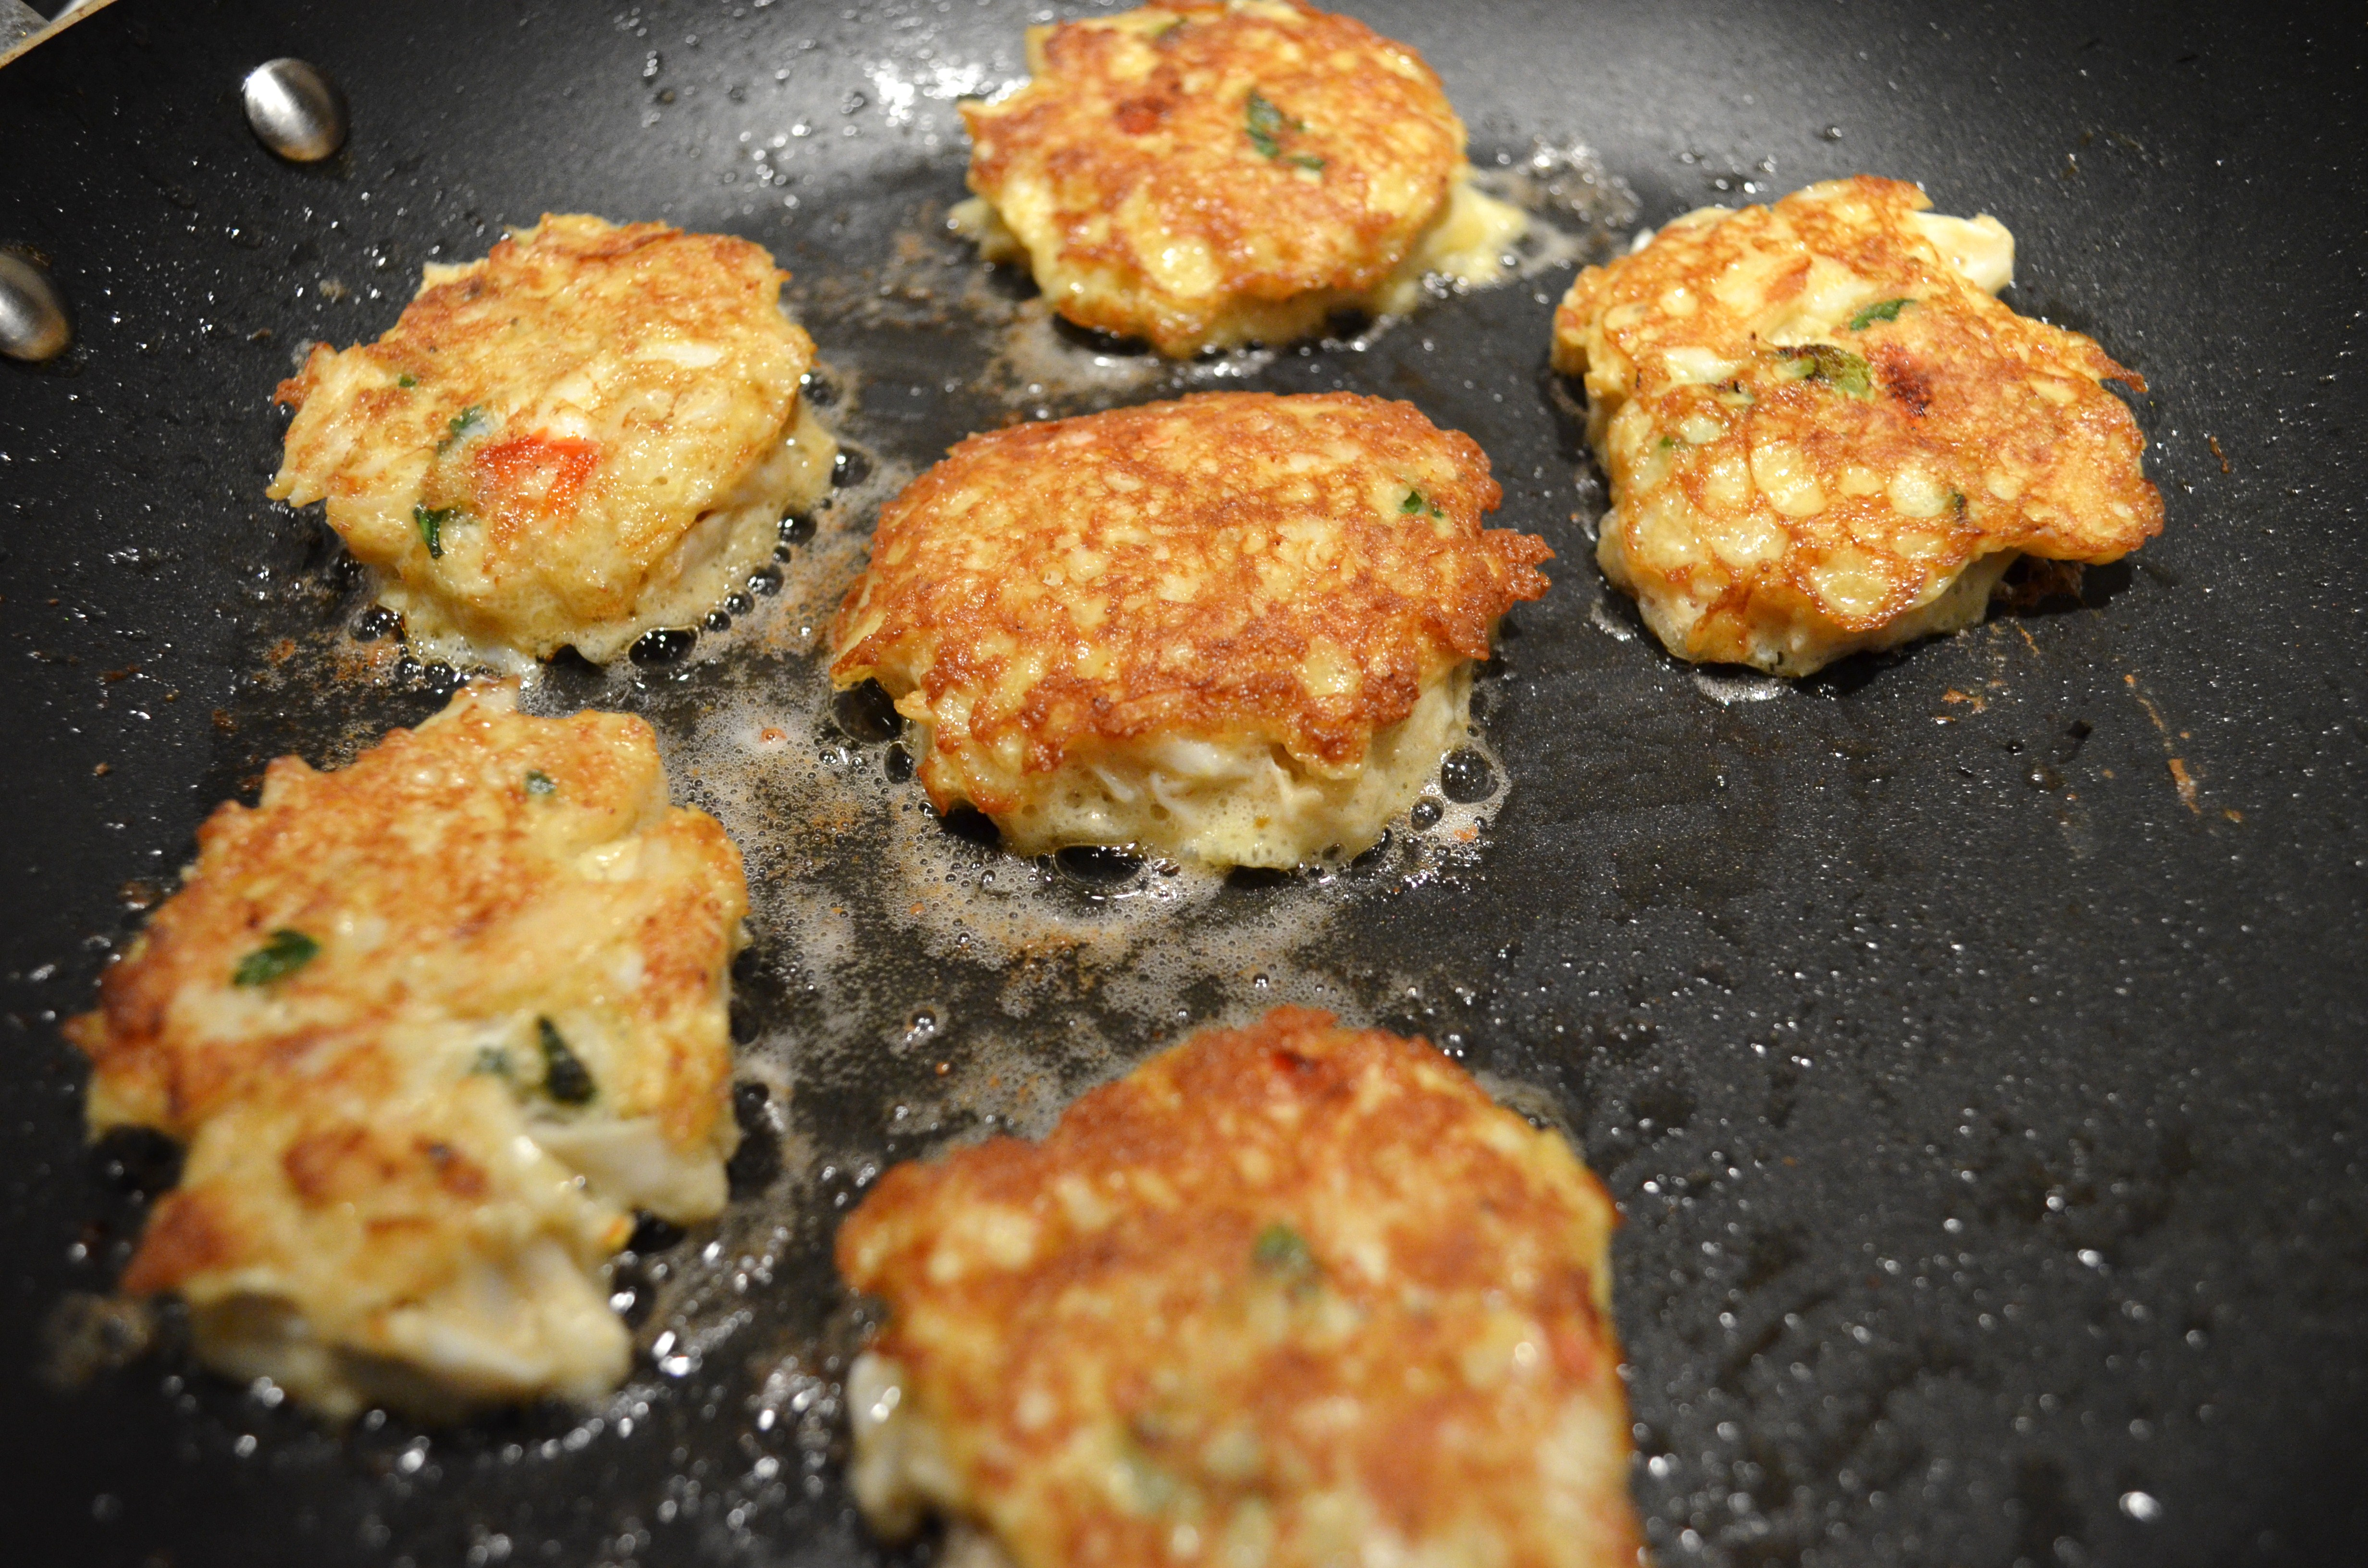 What Does Well With Crab Cakes